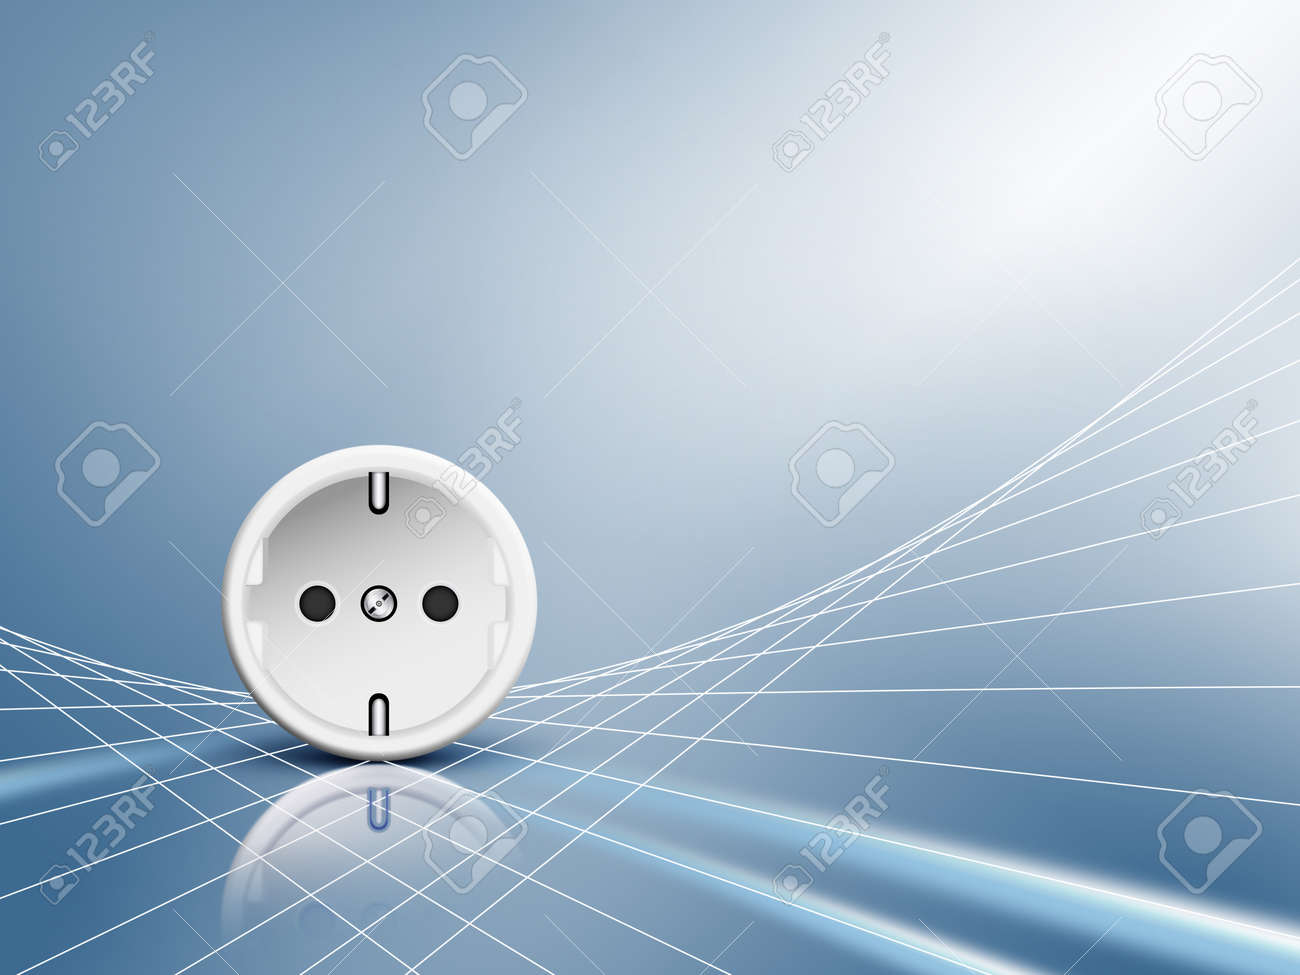 Electric energy - socket, outlet with white abstract power cables